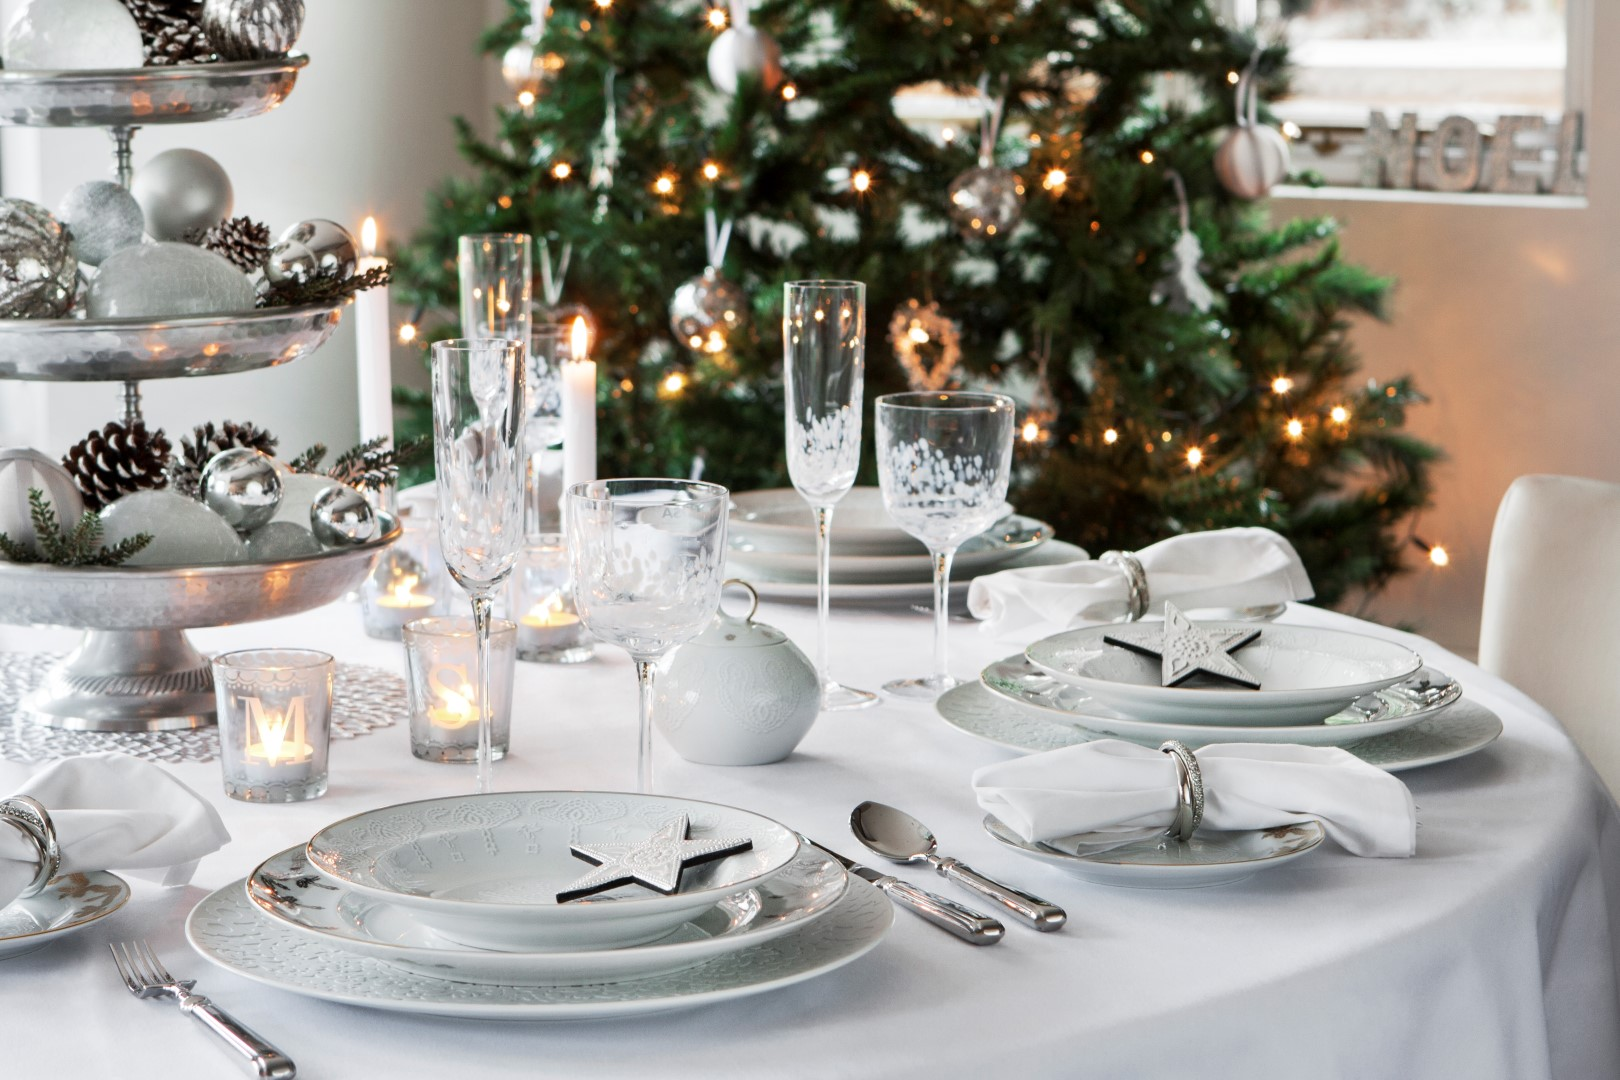 5 Festive Table Plan Ideas To Recreate This Christmas